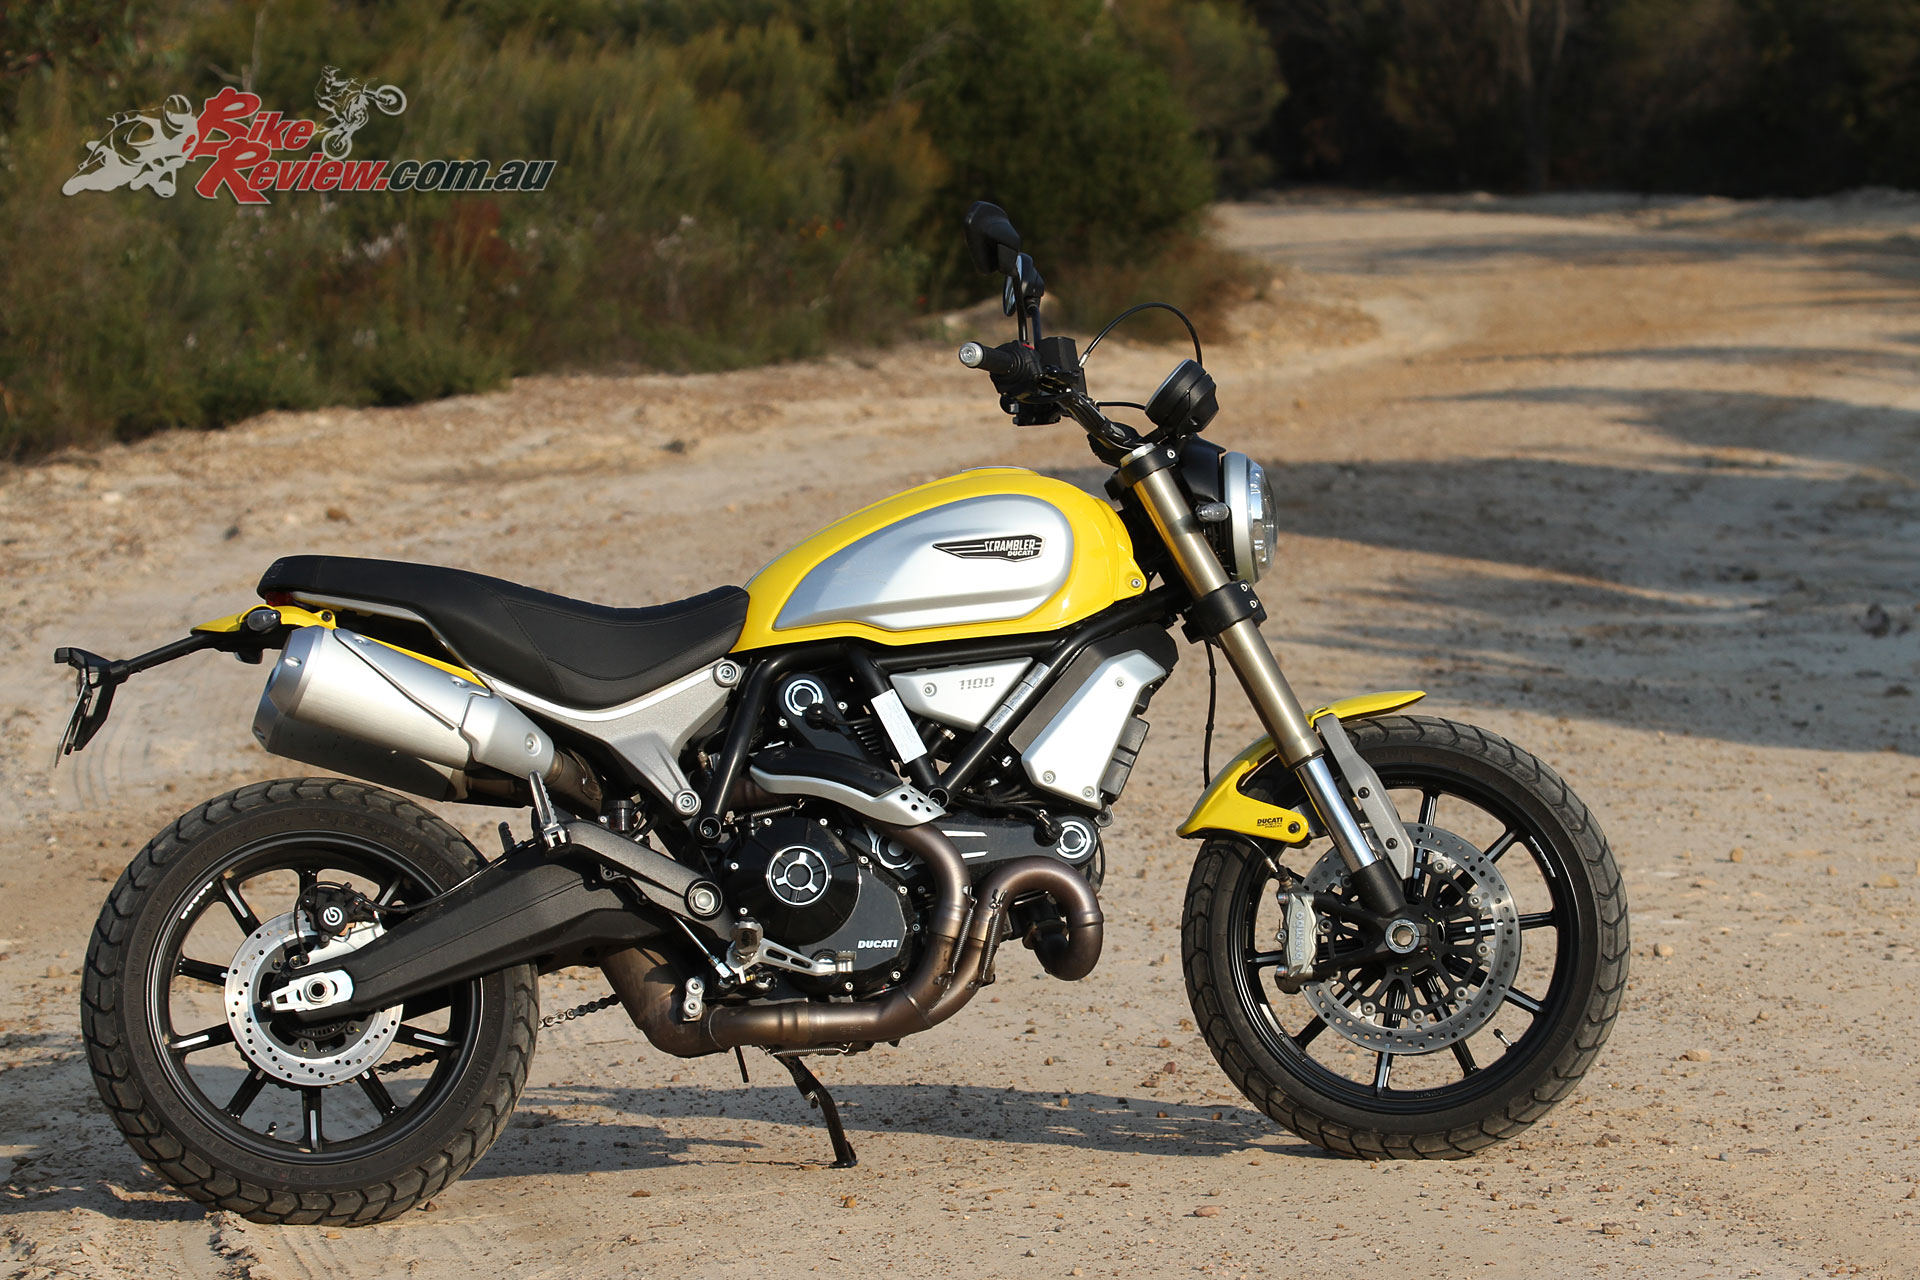 2018-Ducati-Scrambler-1100-Bike-Review-0083